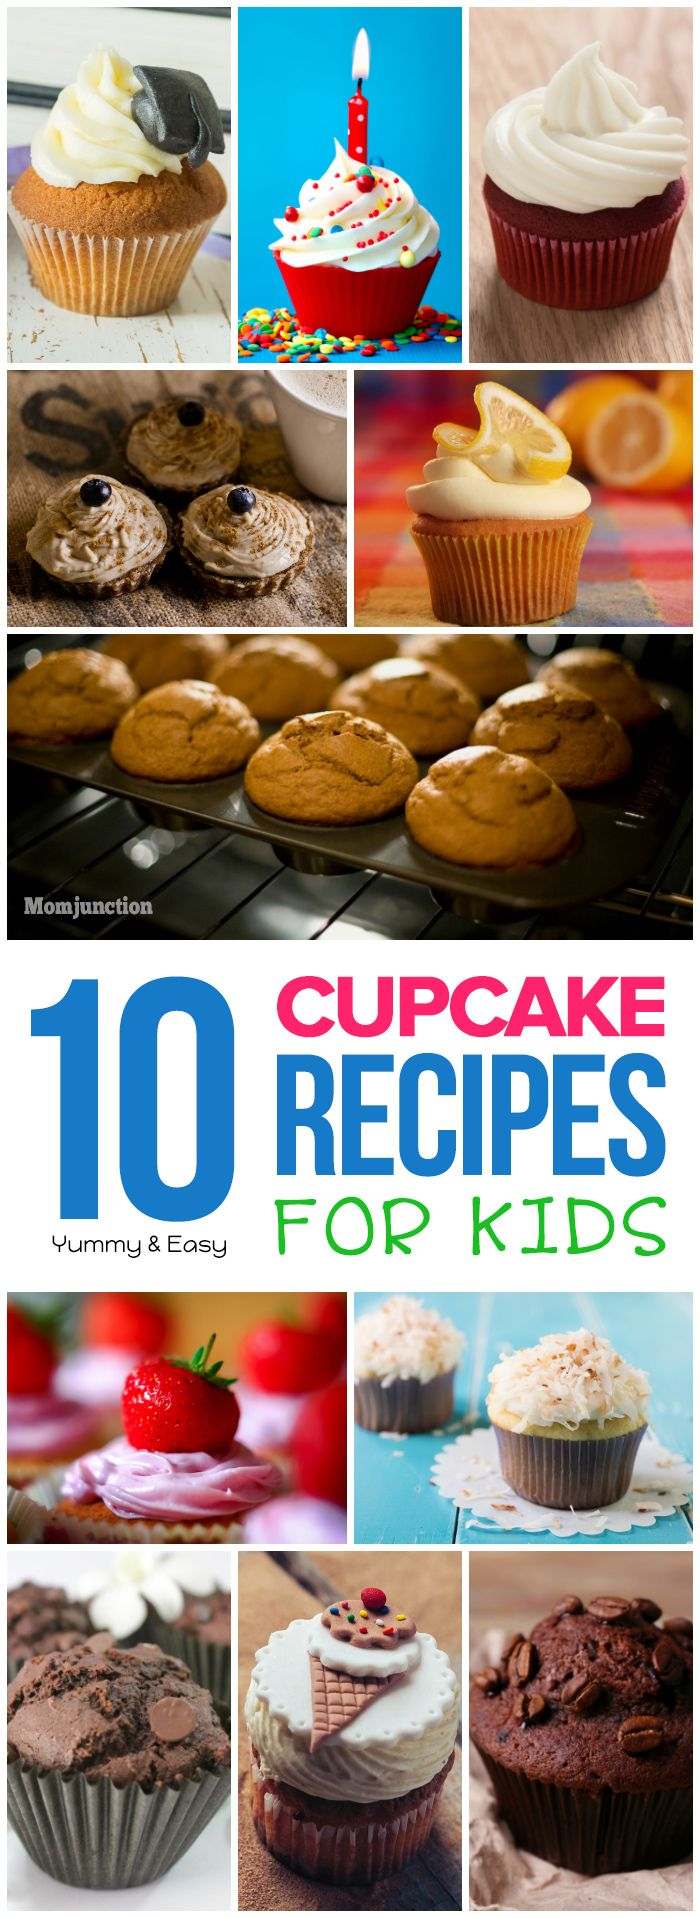 Explore our 19 yummy and easy to bake cup cake recipes for kids. Learn to make chocolate, vegan, fruit and vegetable and holiday cupcakes along with a few decorating ideas!